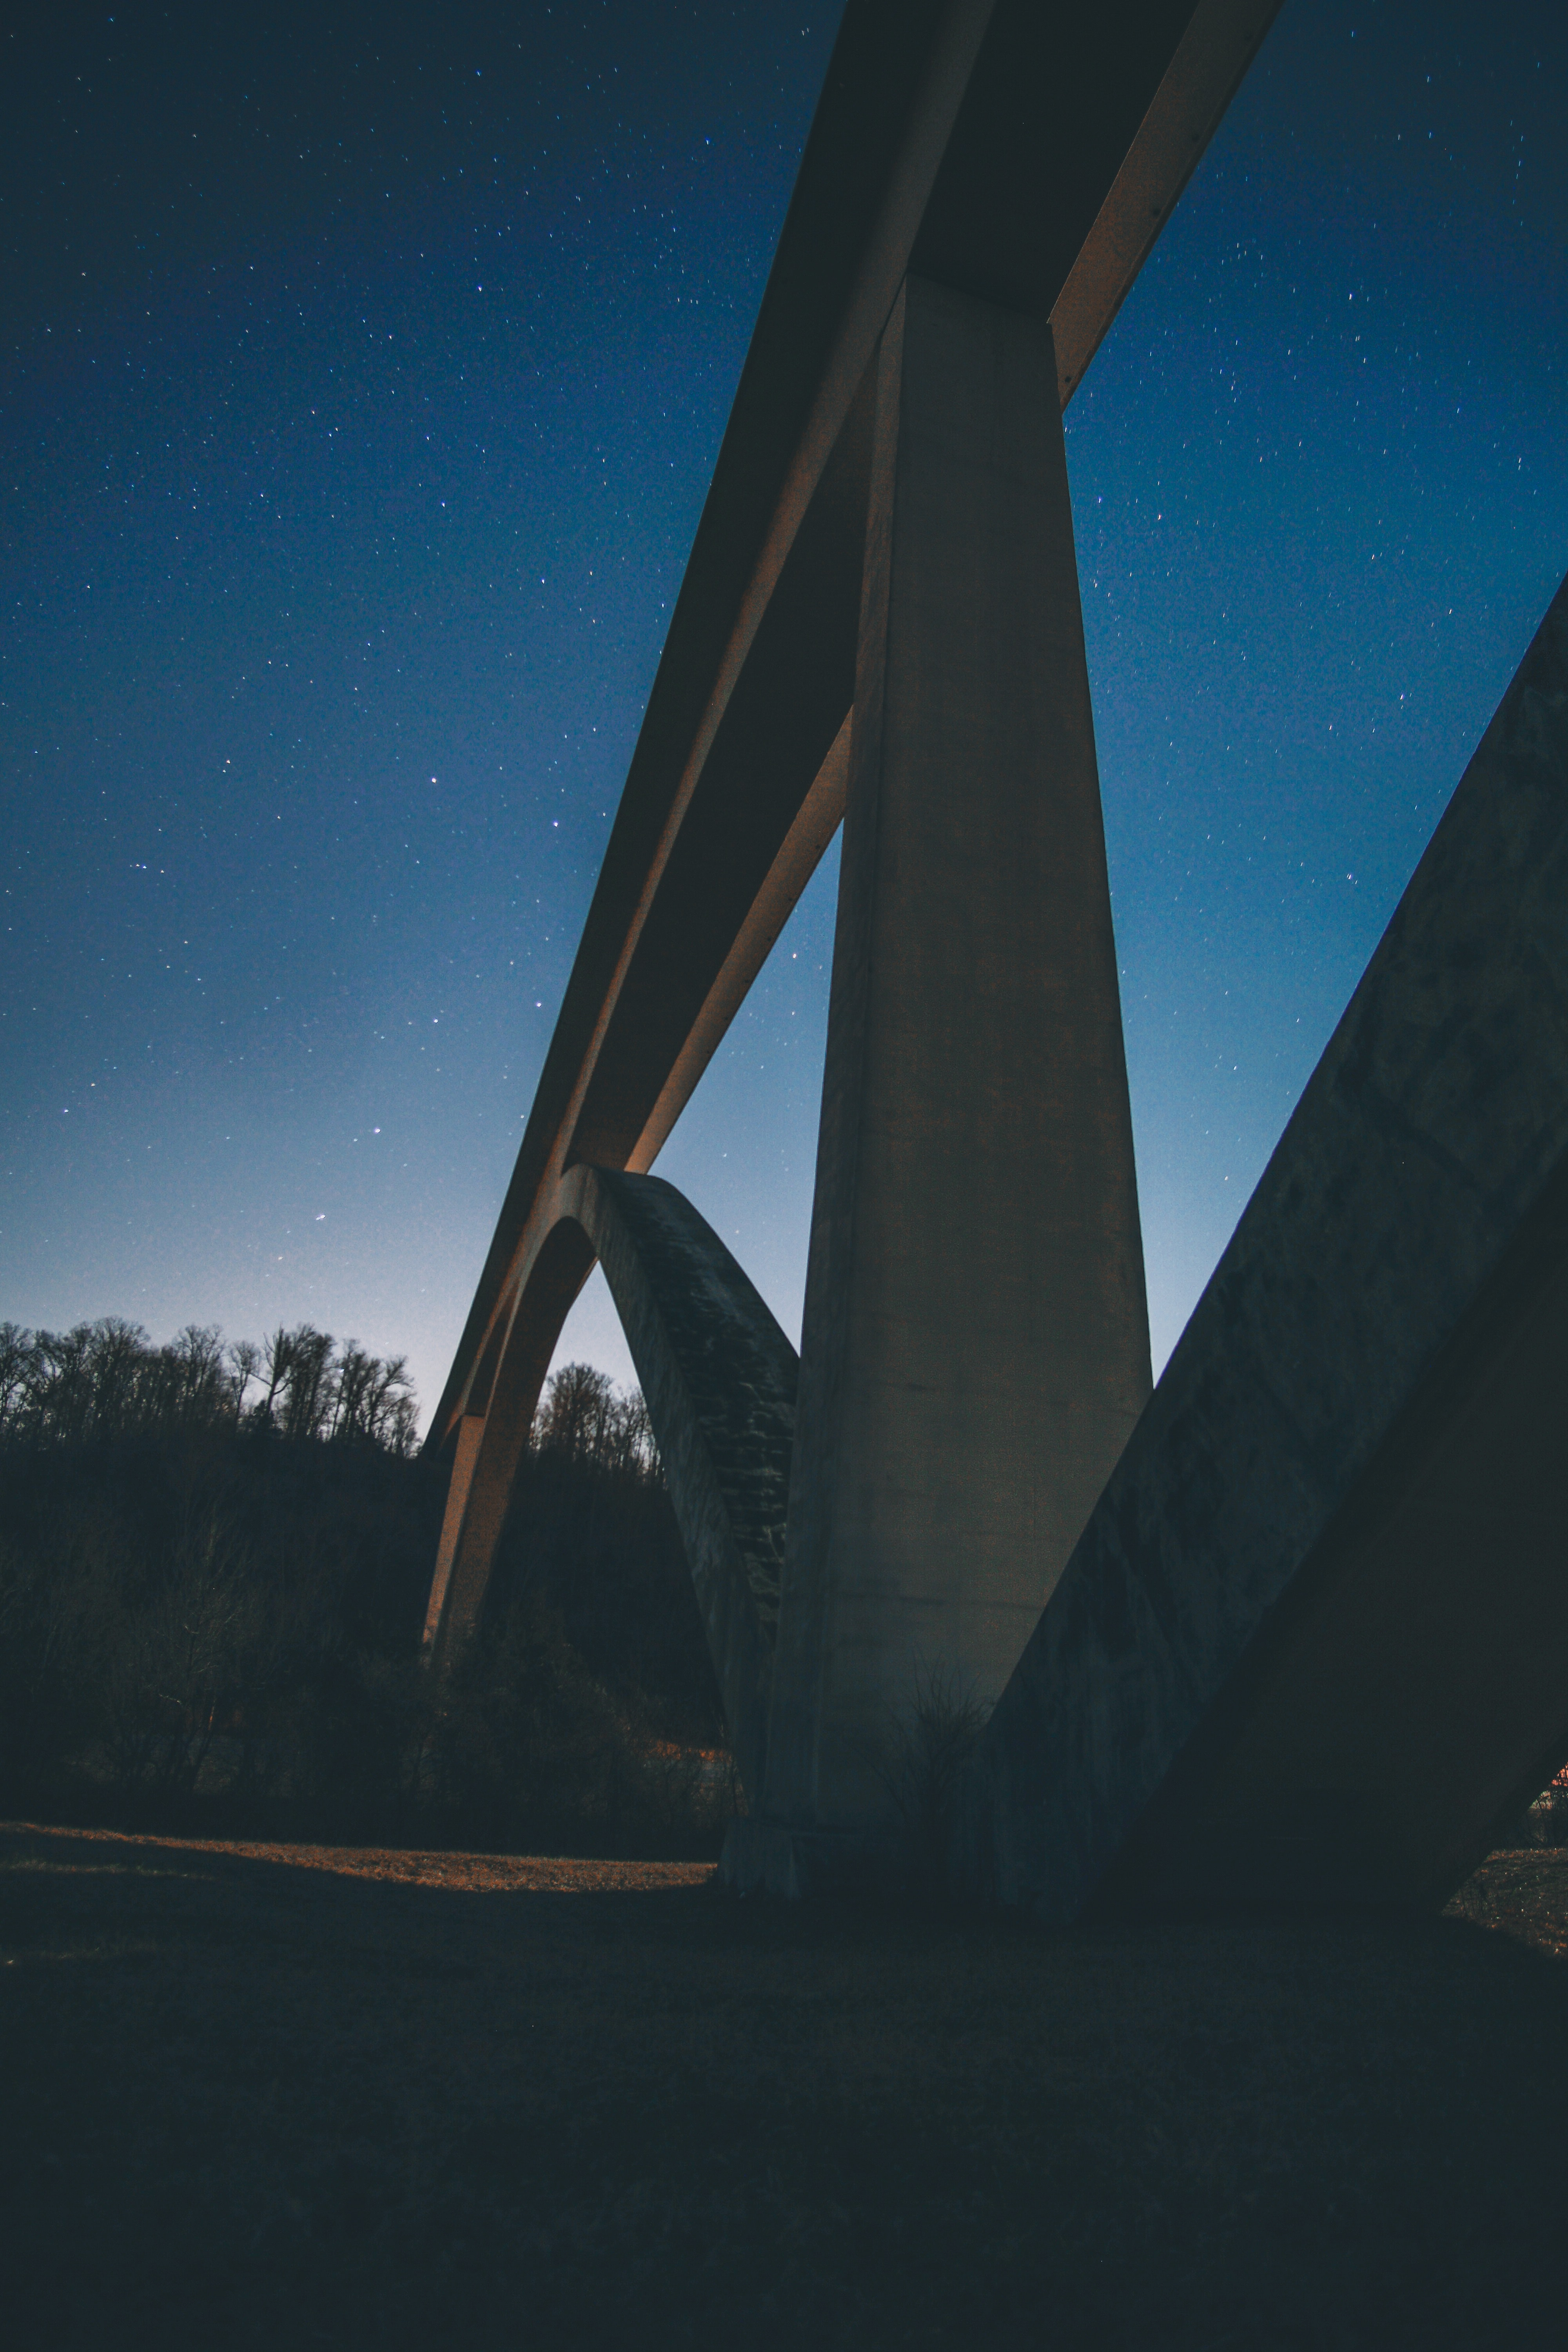 close-up photography of concrete suspension bridge during nighttime